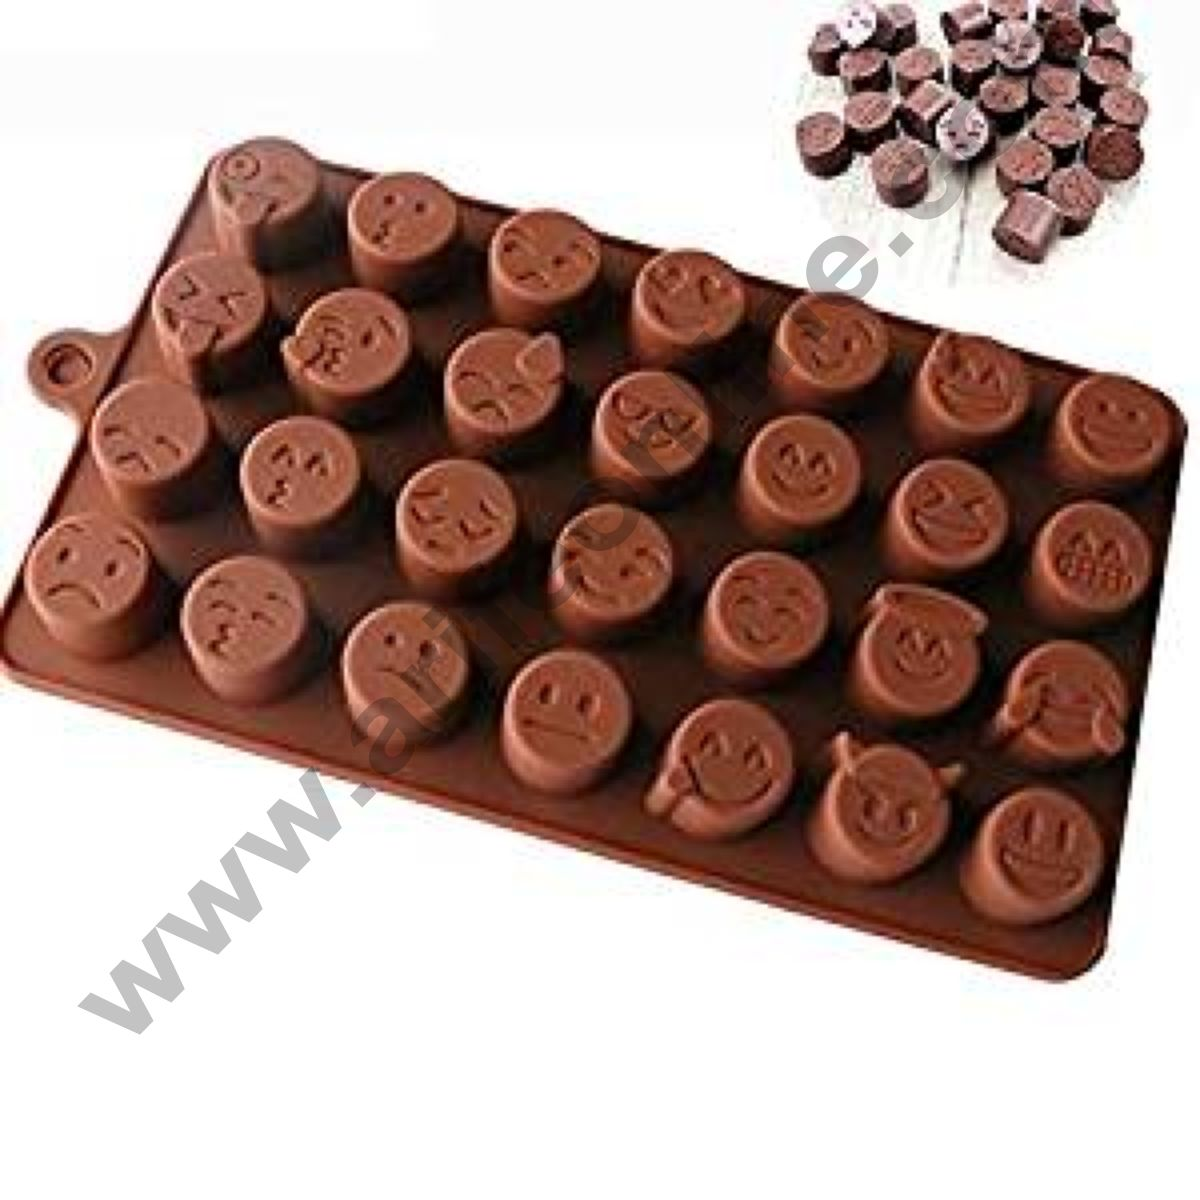 Cake Decor Silicon 28 Cavity Smiley Faces Brown Chocolate Mould, Ice Mould, Chocolate Decorating Mould